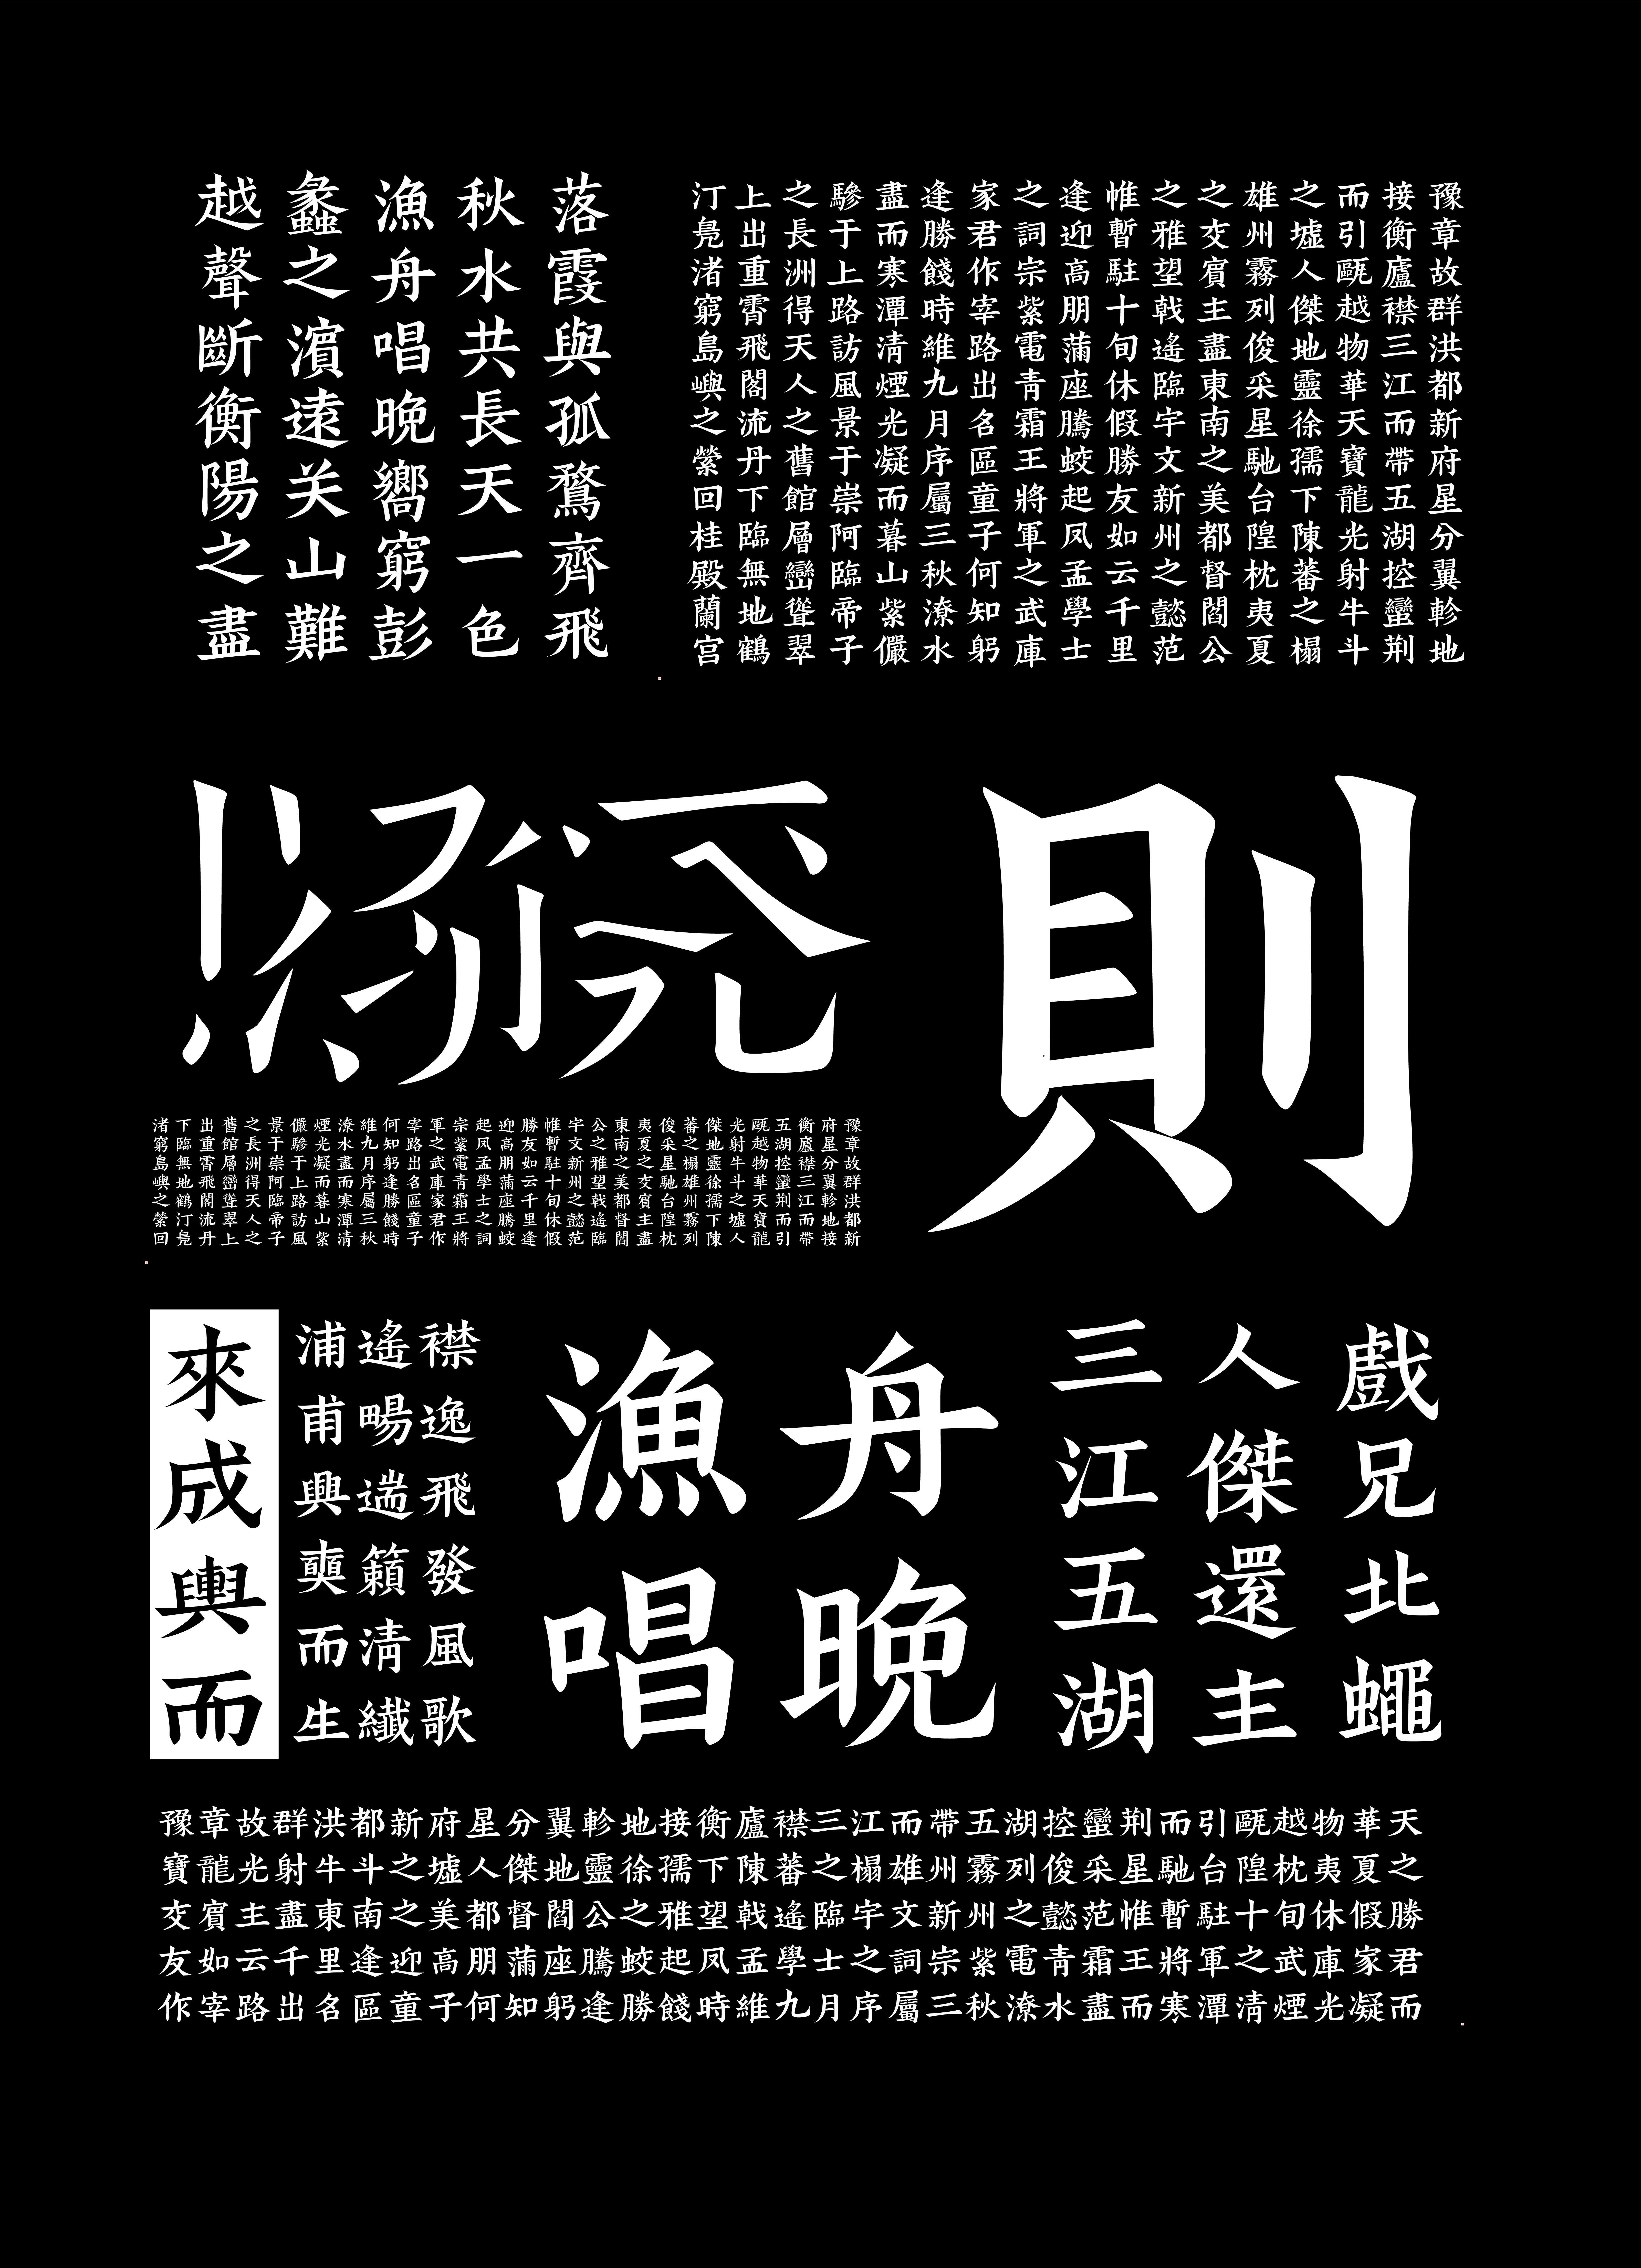 Here are the traditional Chinese characters you want.